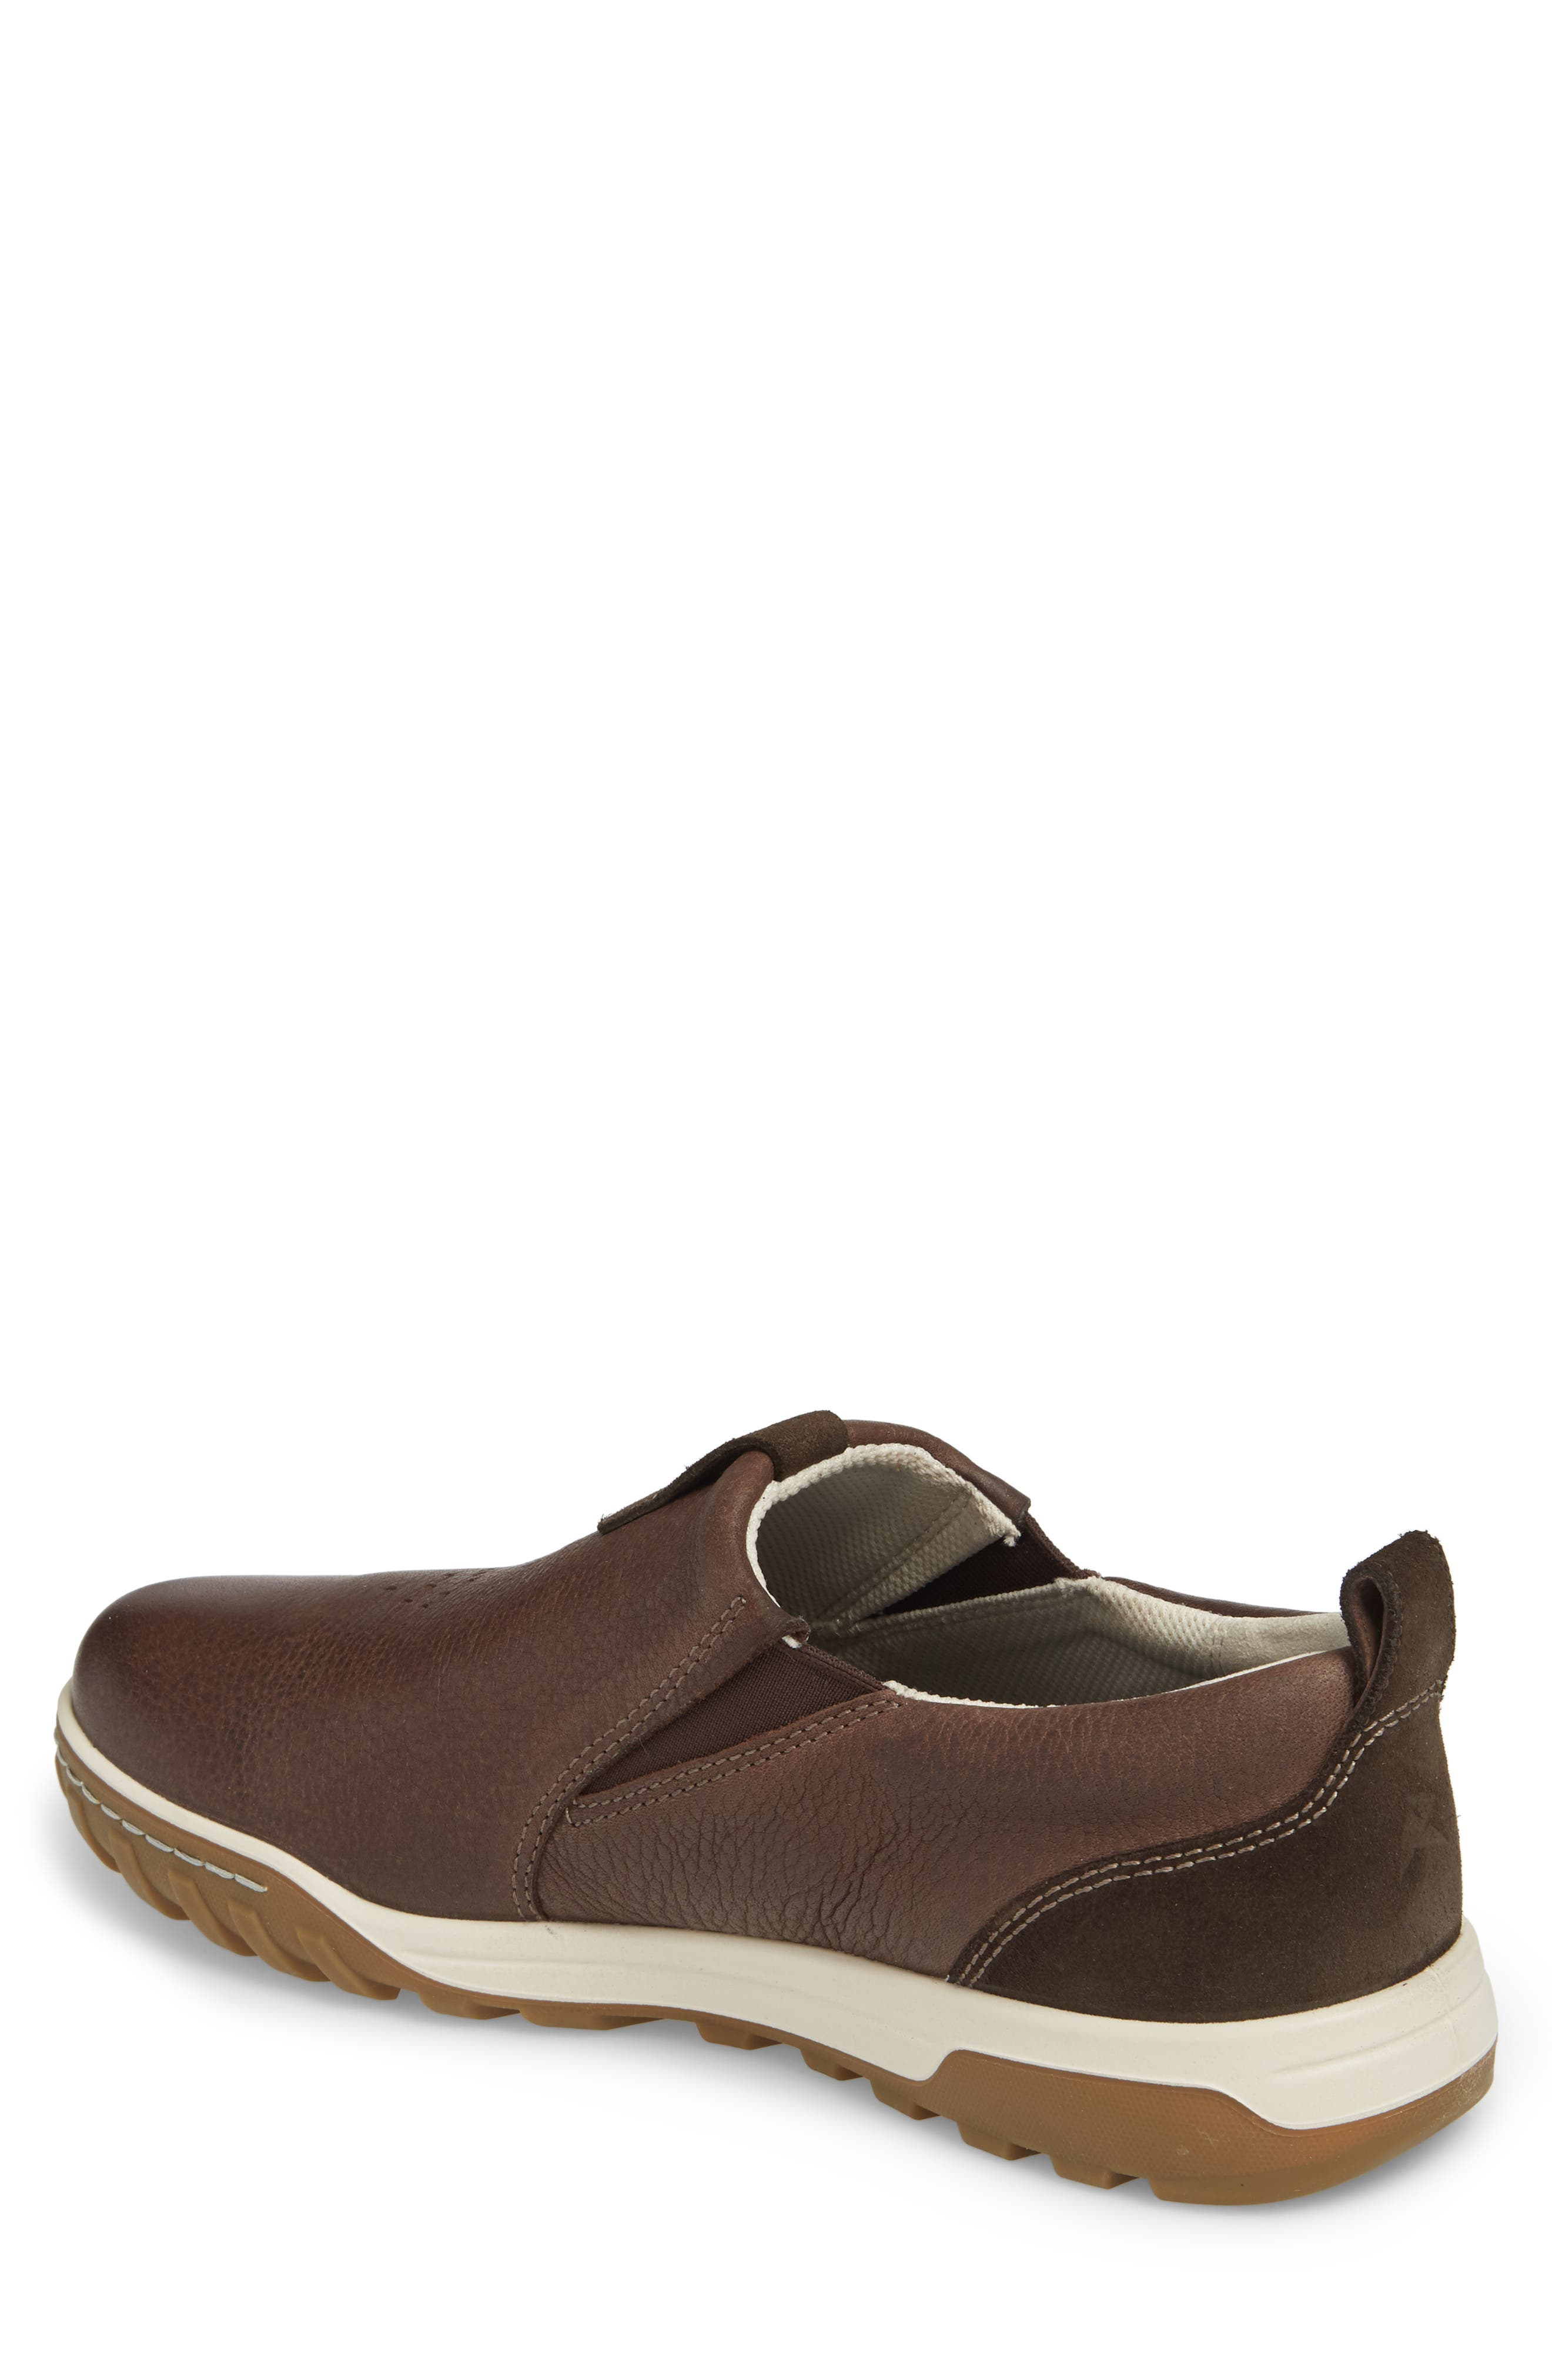 Urban Lifestyle Slip-On Sneaker,                             Alternate thumbnail 2, color,                             Coffee Leather